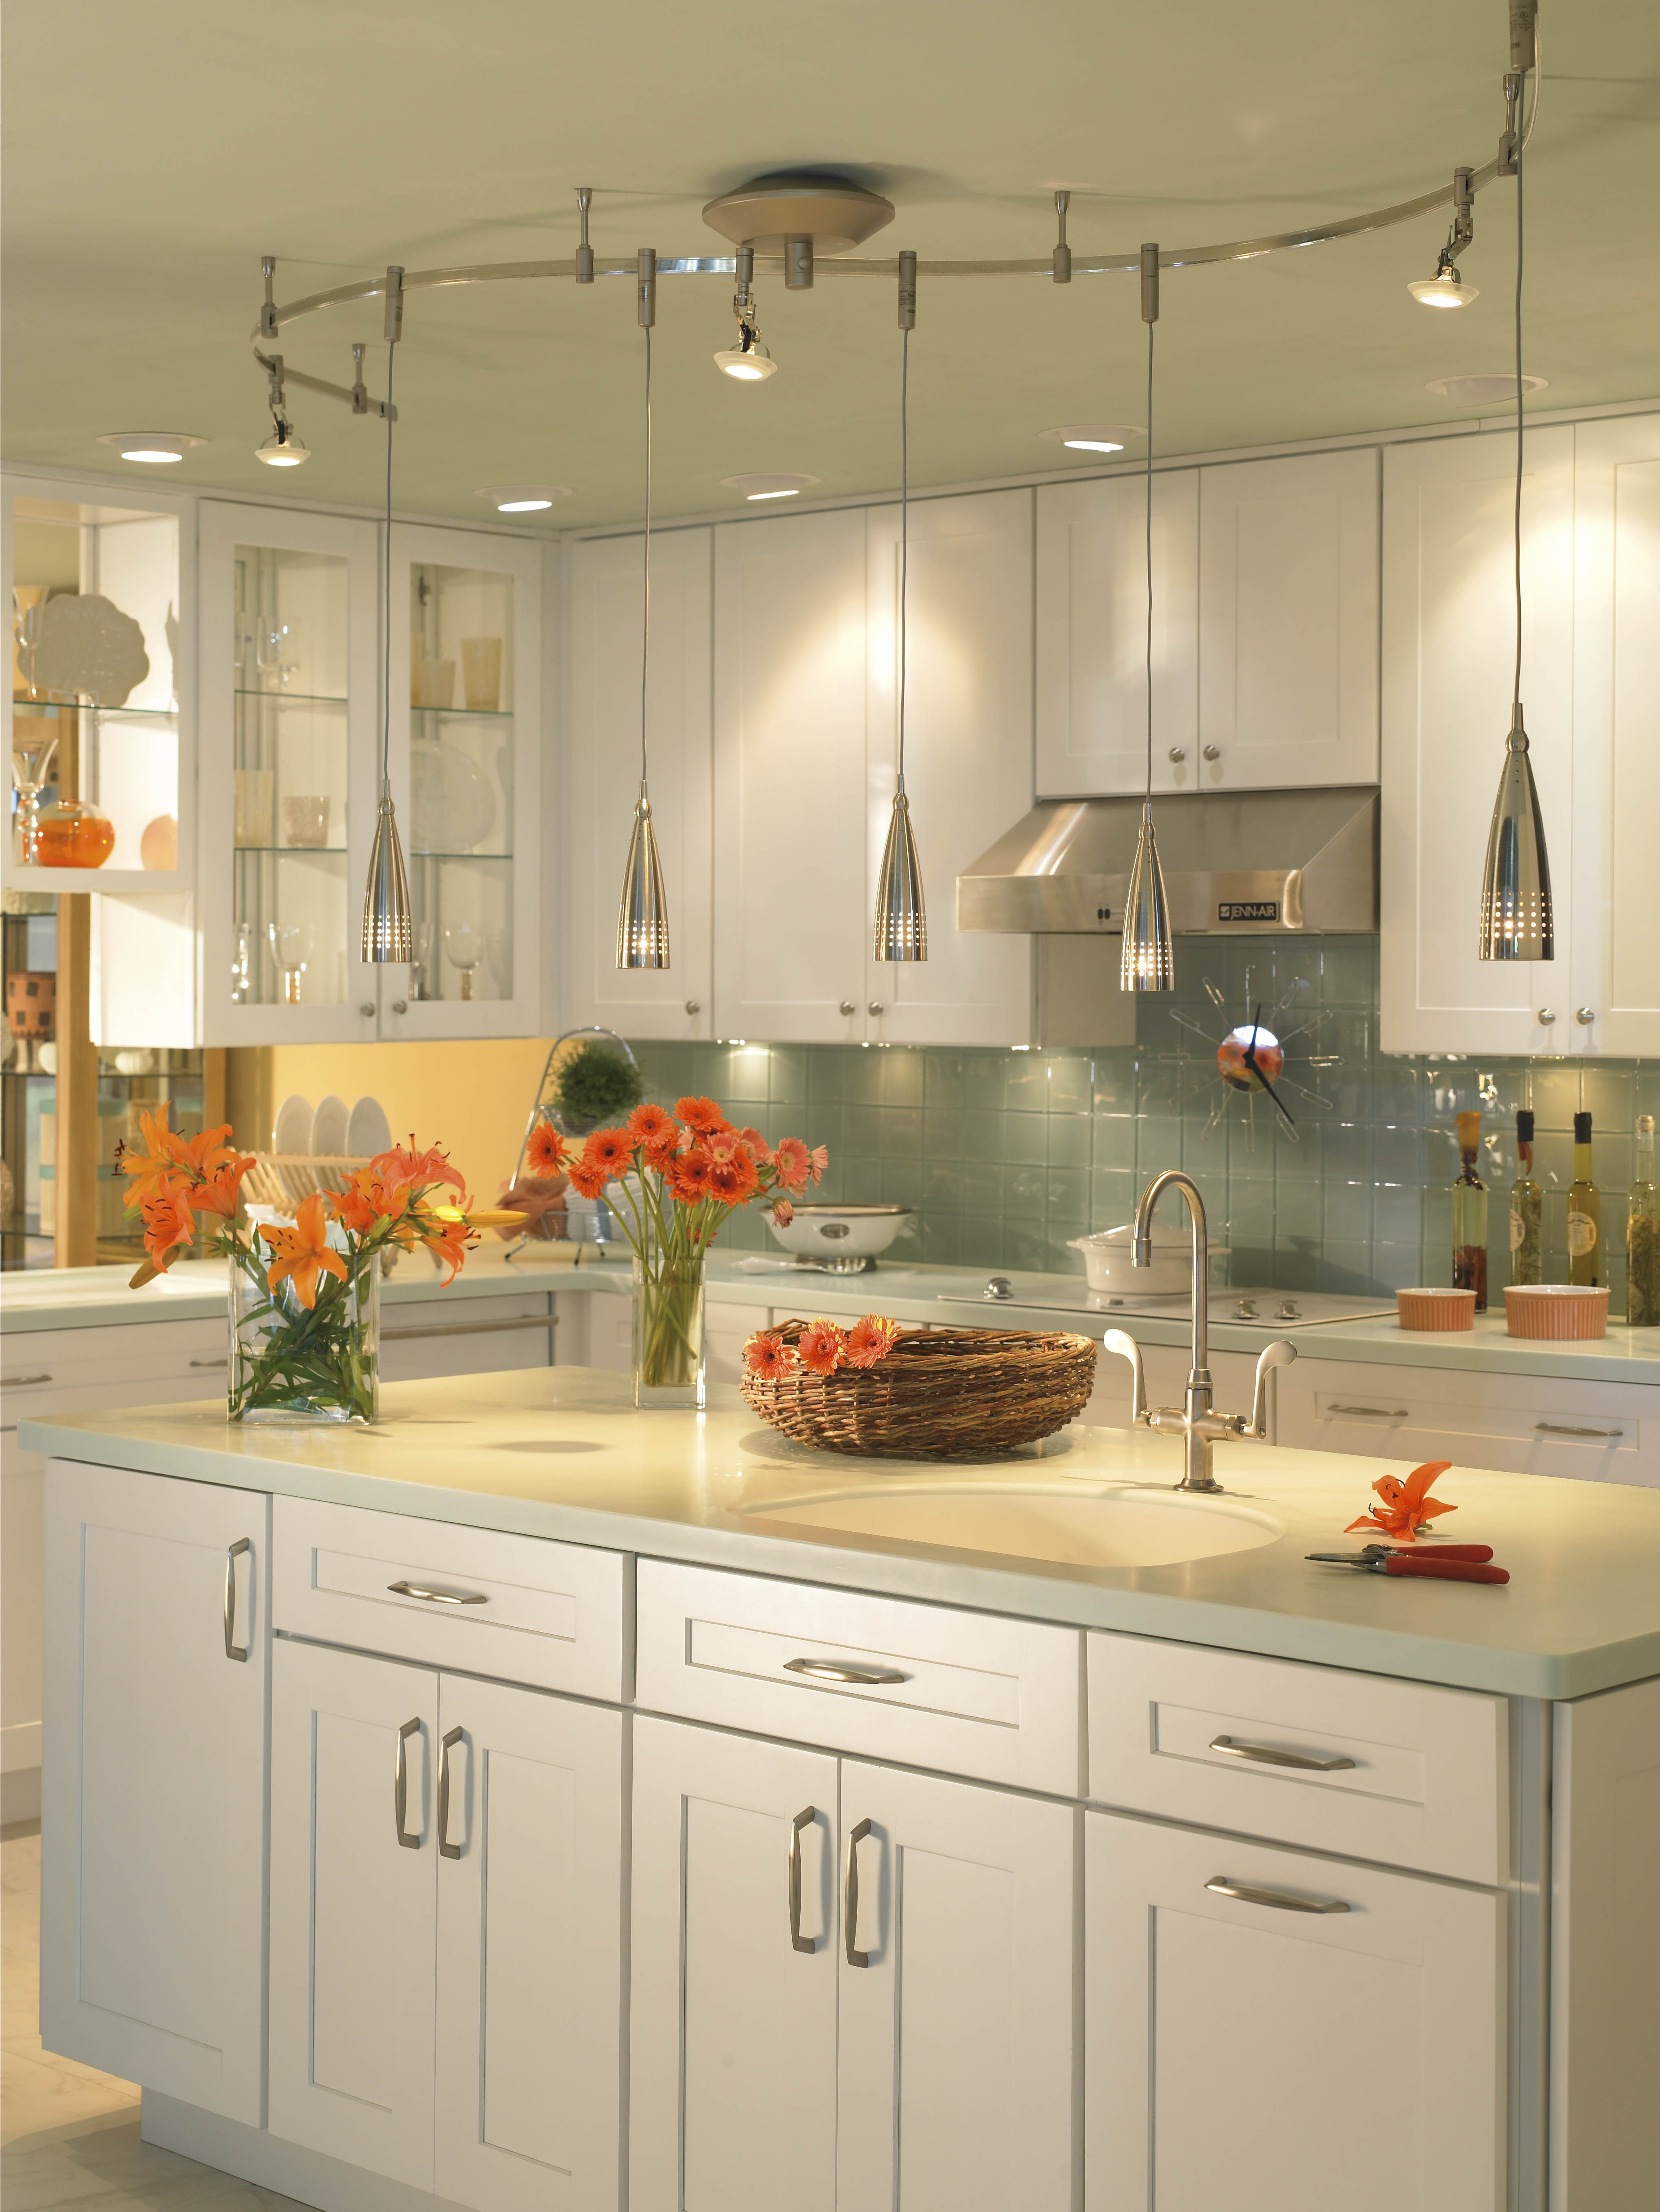 1000+ images about maine kitchen track lighting on pinterest